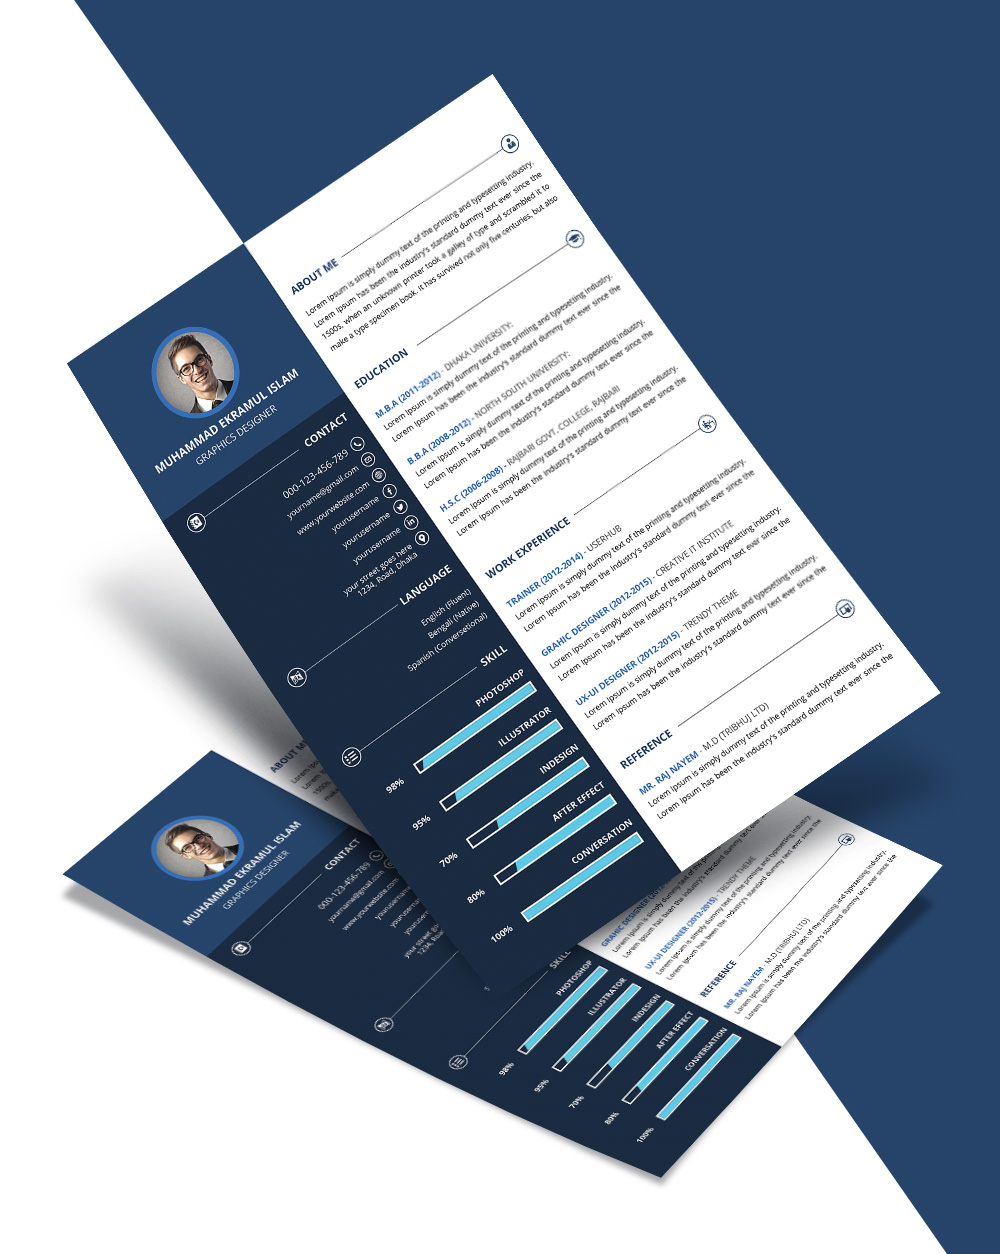 Free Beautiful Resume (CV) Design Template PSD File (1)